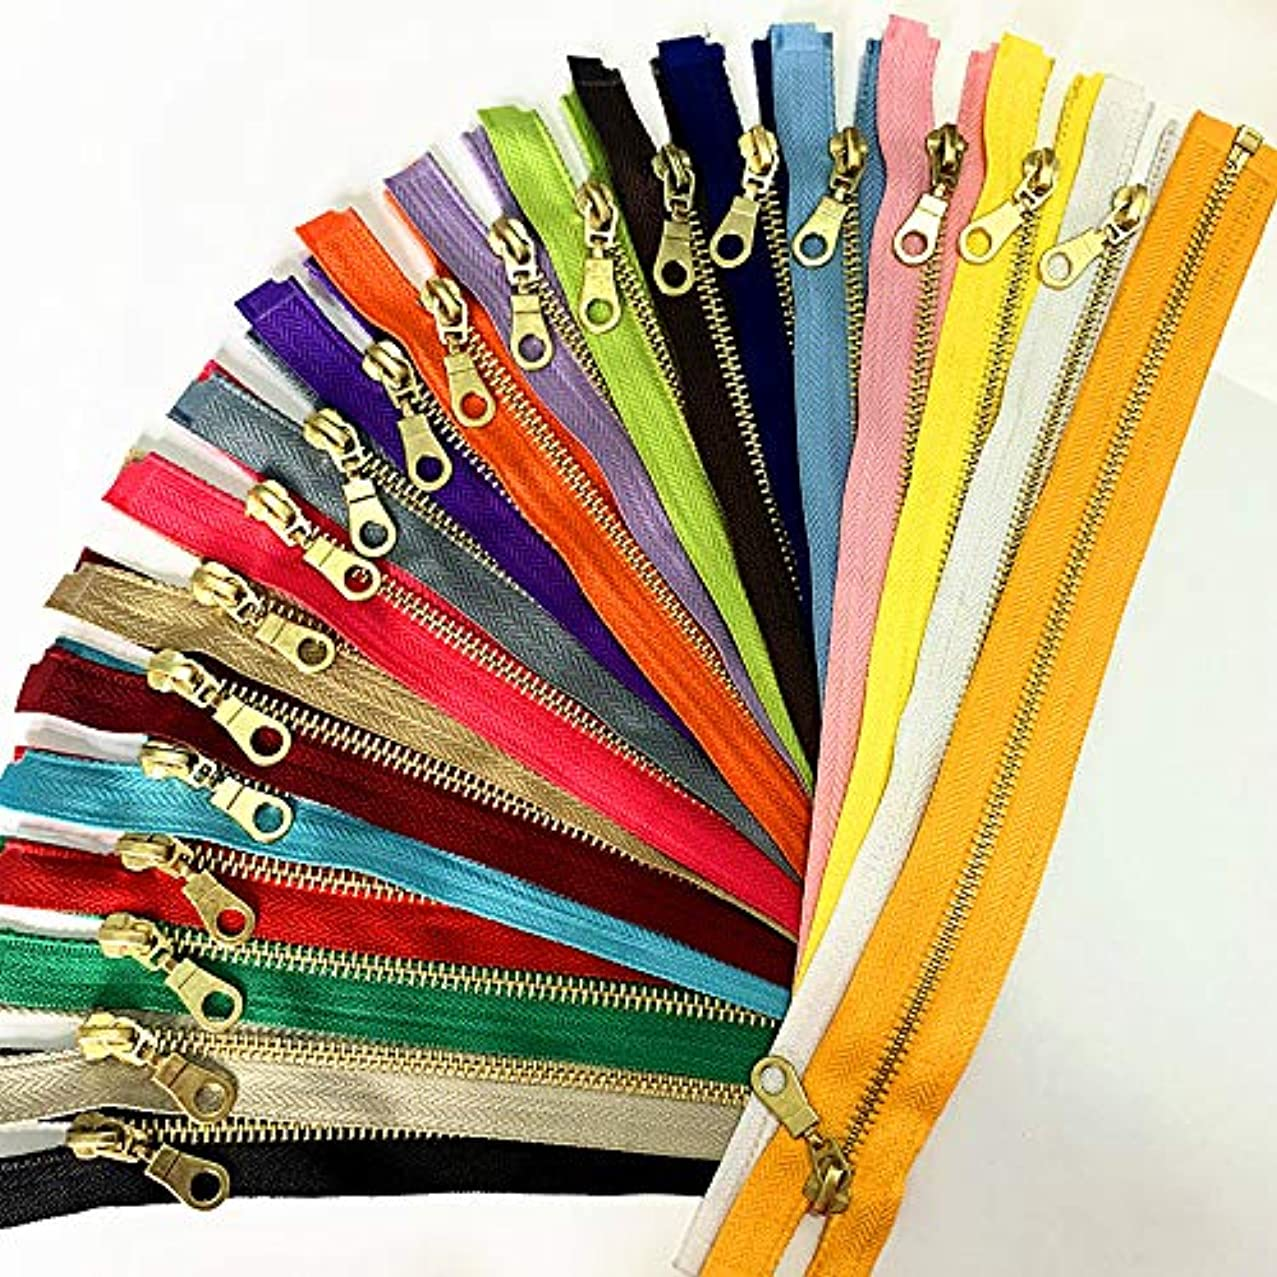 WKXFJJWZC Set of 20 Pieces 5# Brass Metal Separate Zippers in with Donut Zippers Pulls 12 Inch(20Color) (12inch)